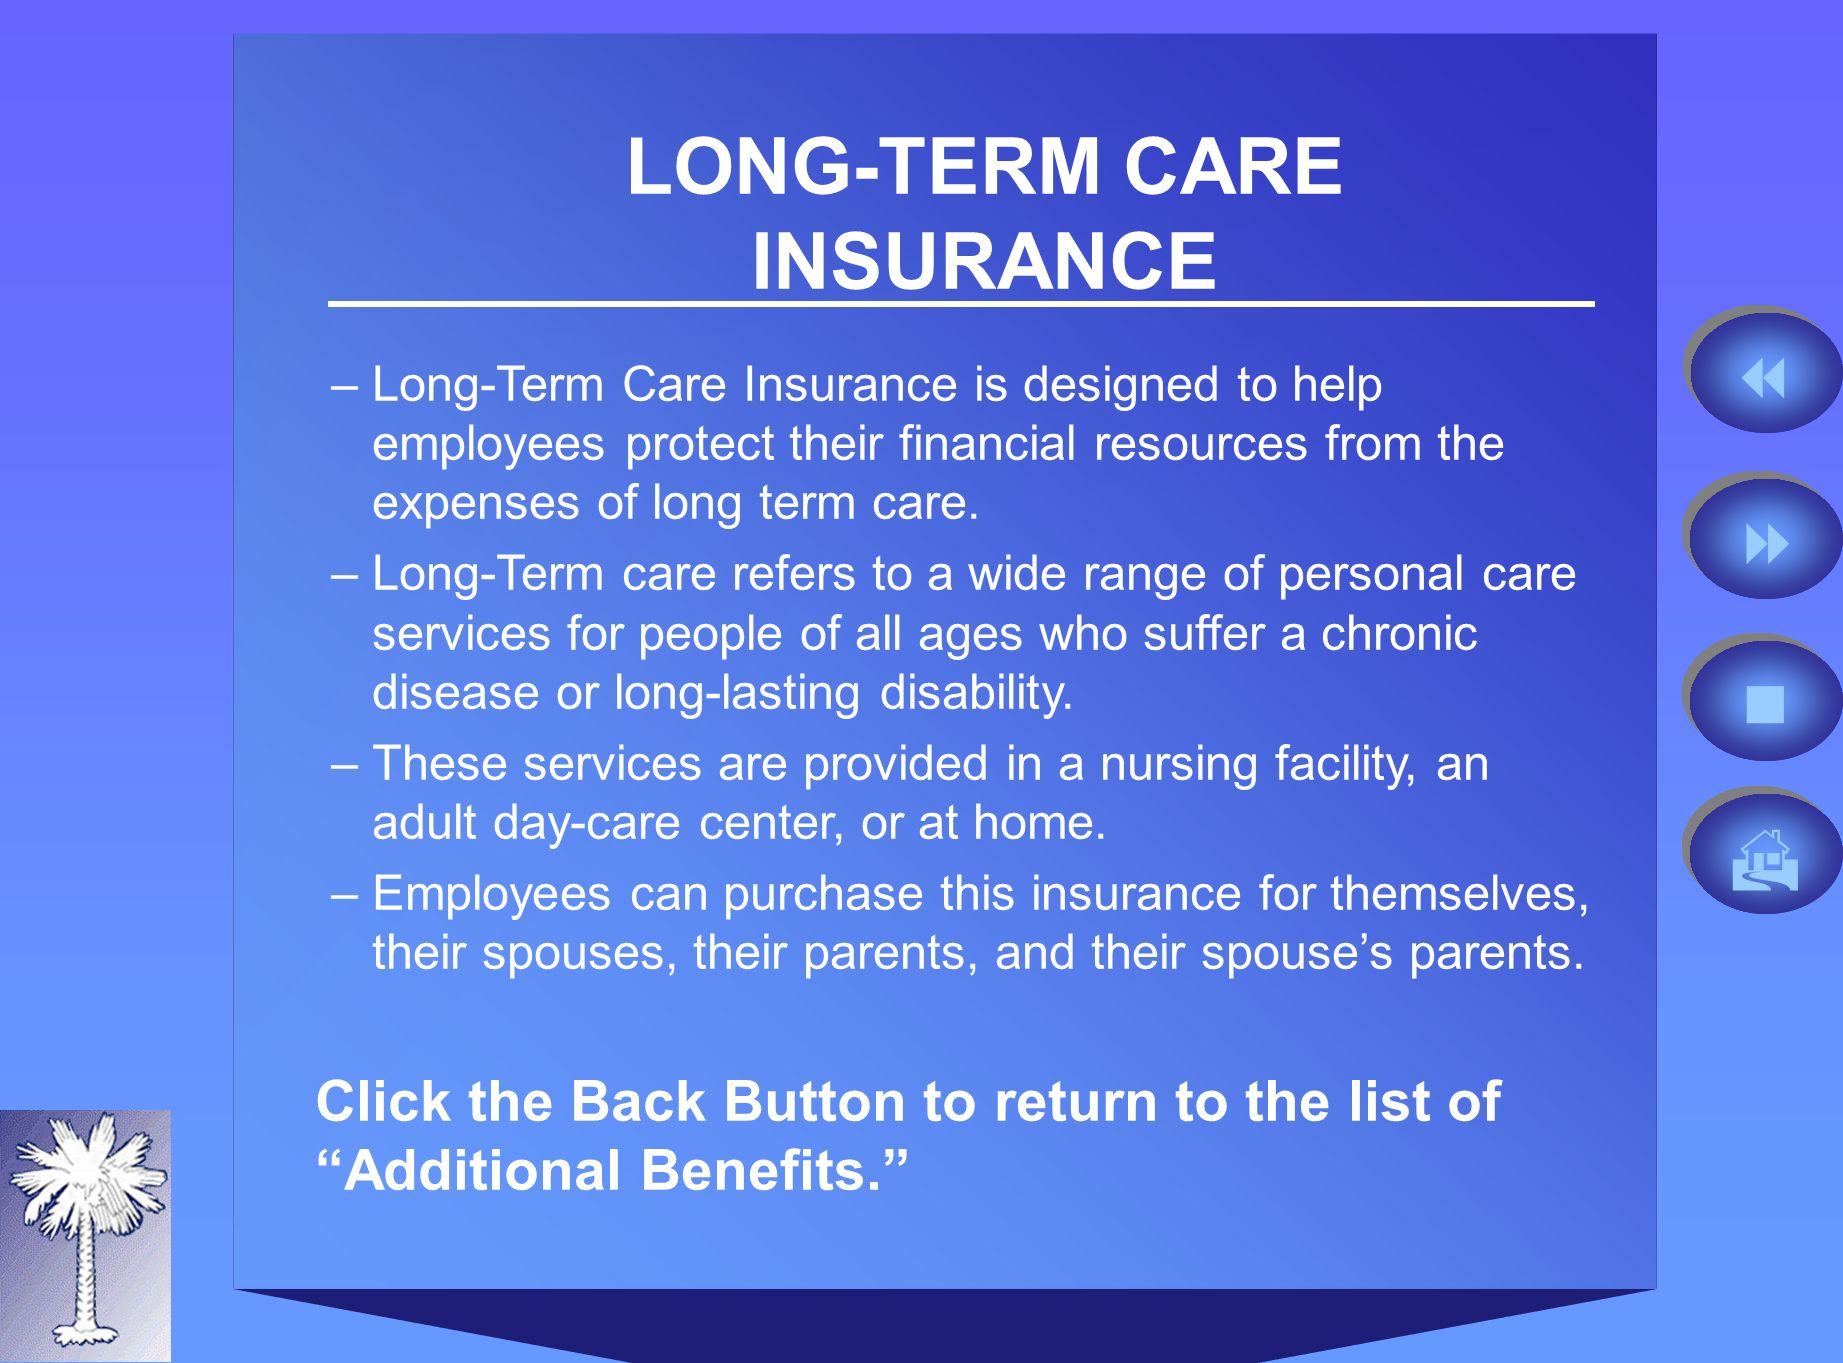 LONG-TERM CARE INSURANCE –Long-Term Care Insurance is designed to help employees protect their financial resources from the expenses of long term care.